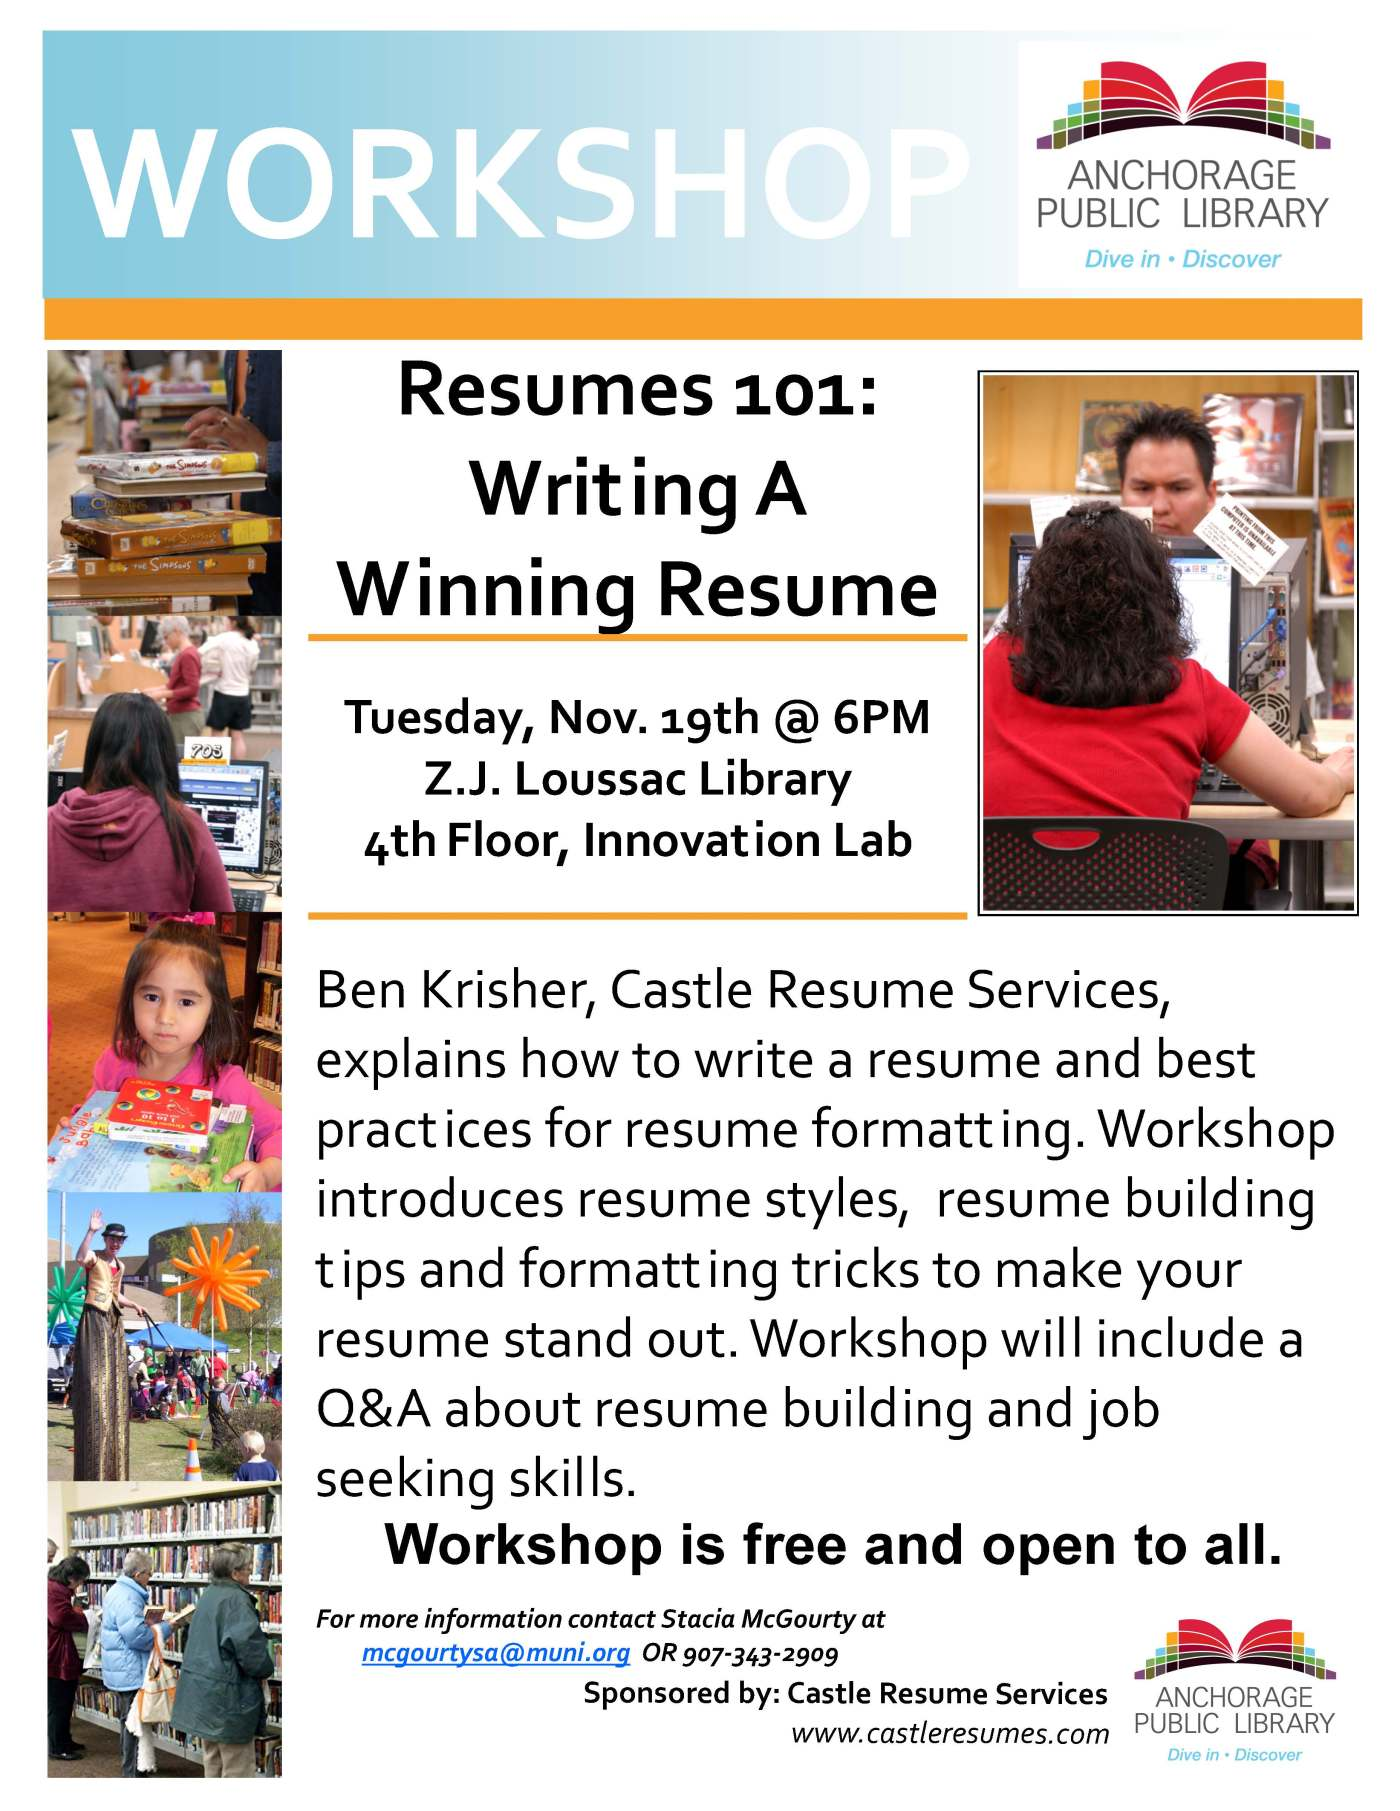 Free Resume Writing Workshop   Que Pasa? - Anchorage